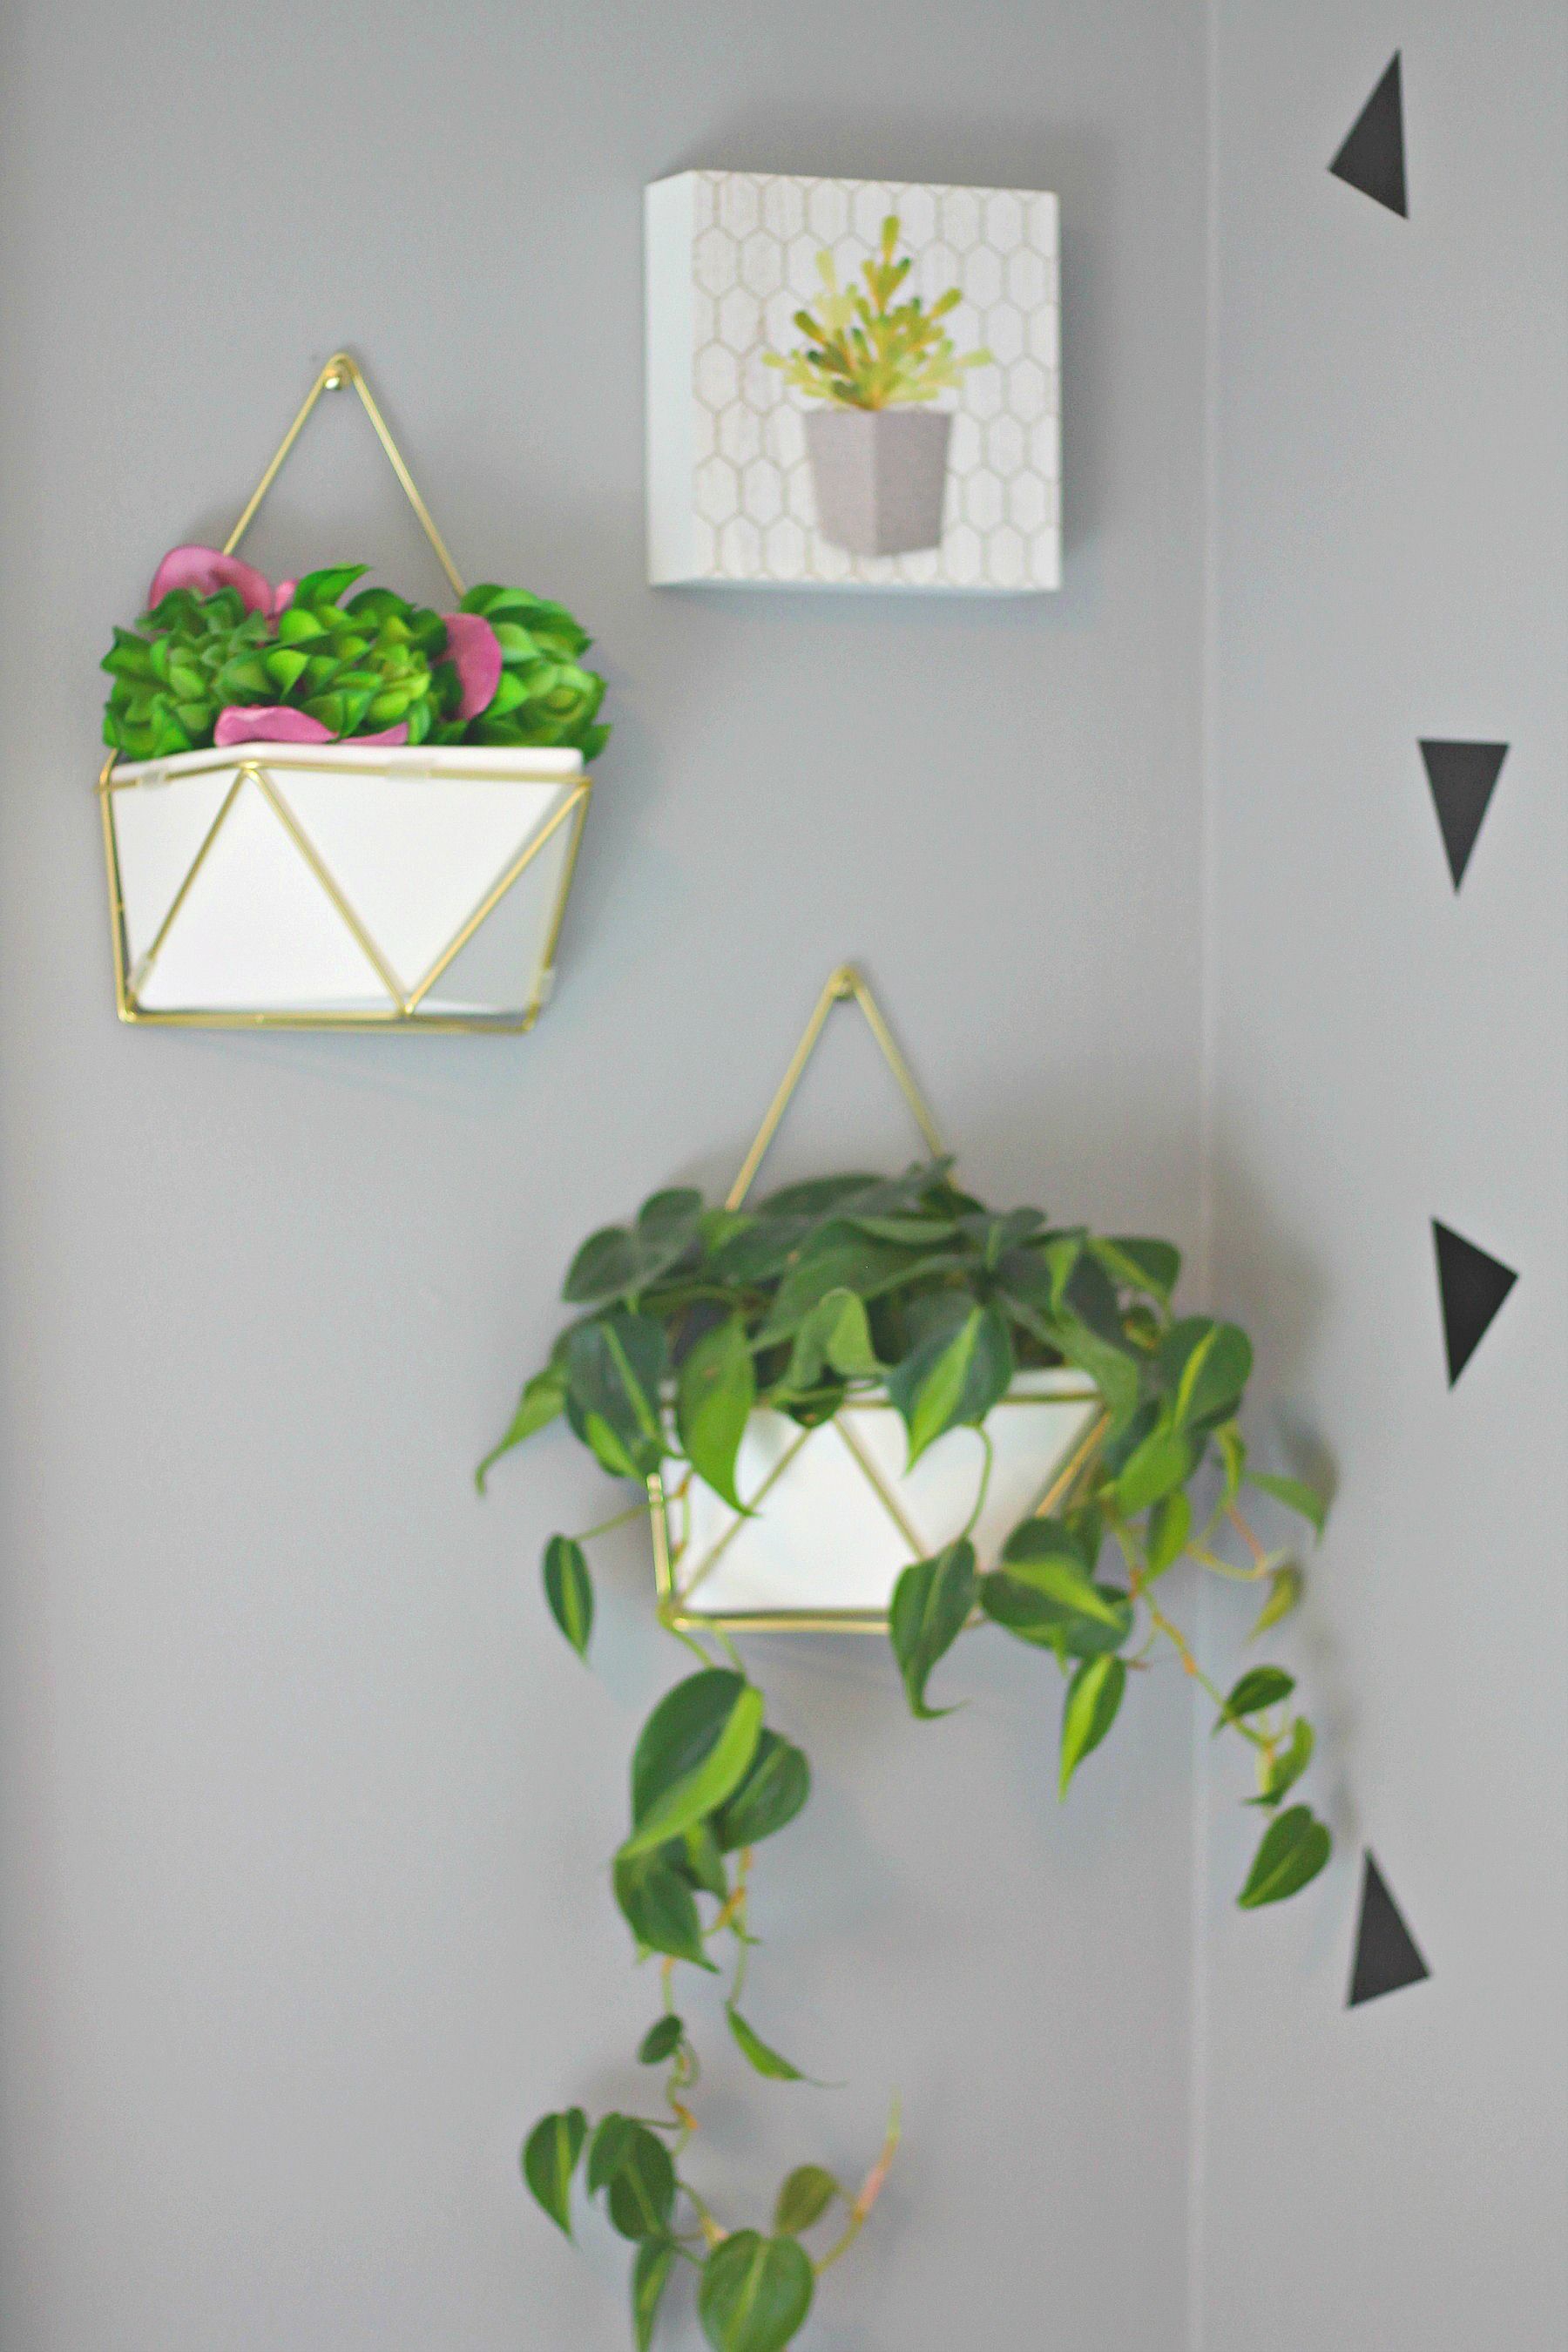 Wall Hanging Plants Hipster Chic Girl 39s Room Reveal Orc Week 7 Beauteeful